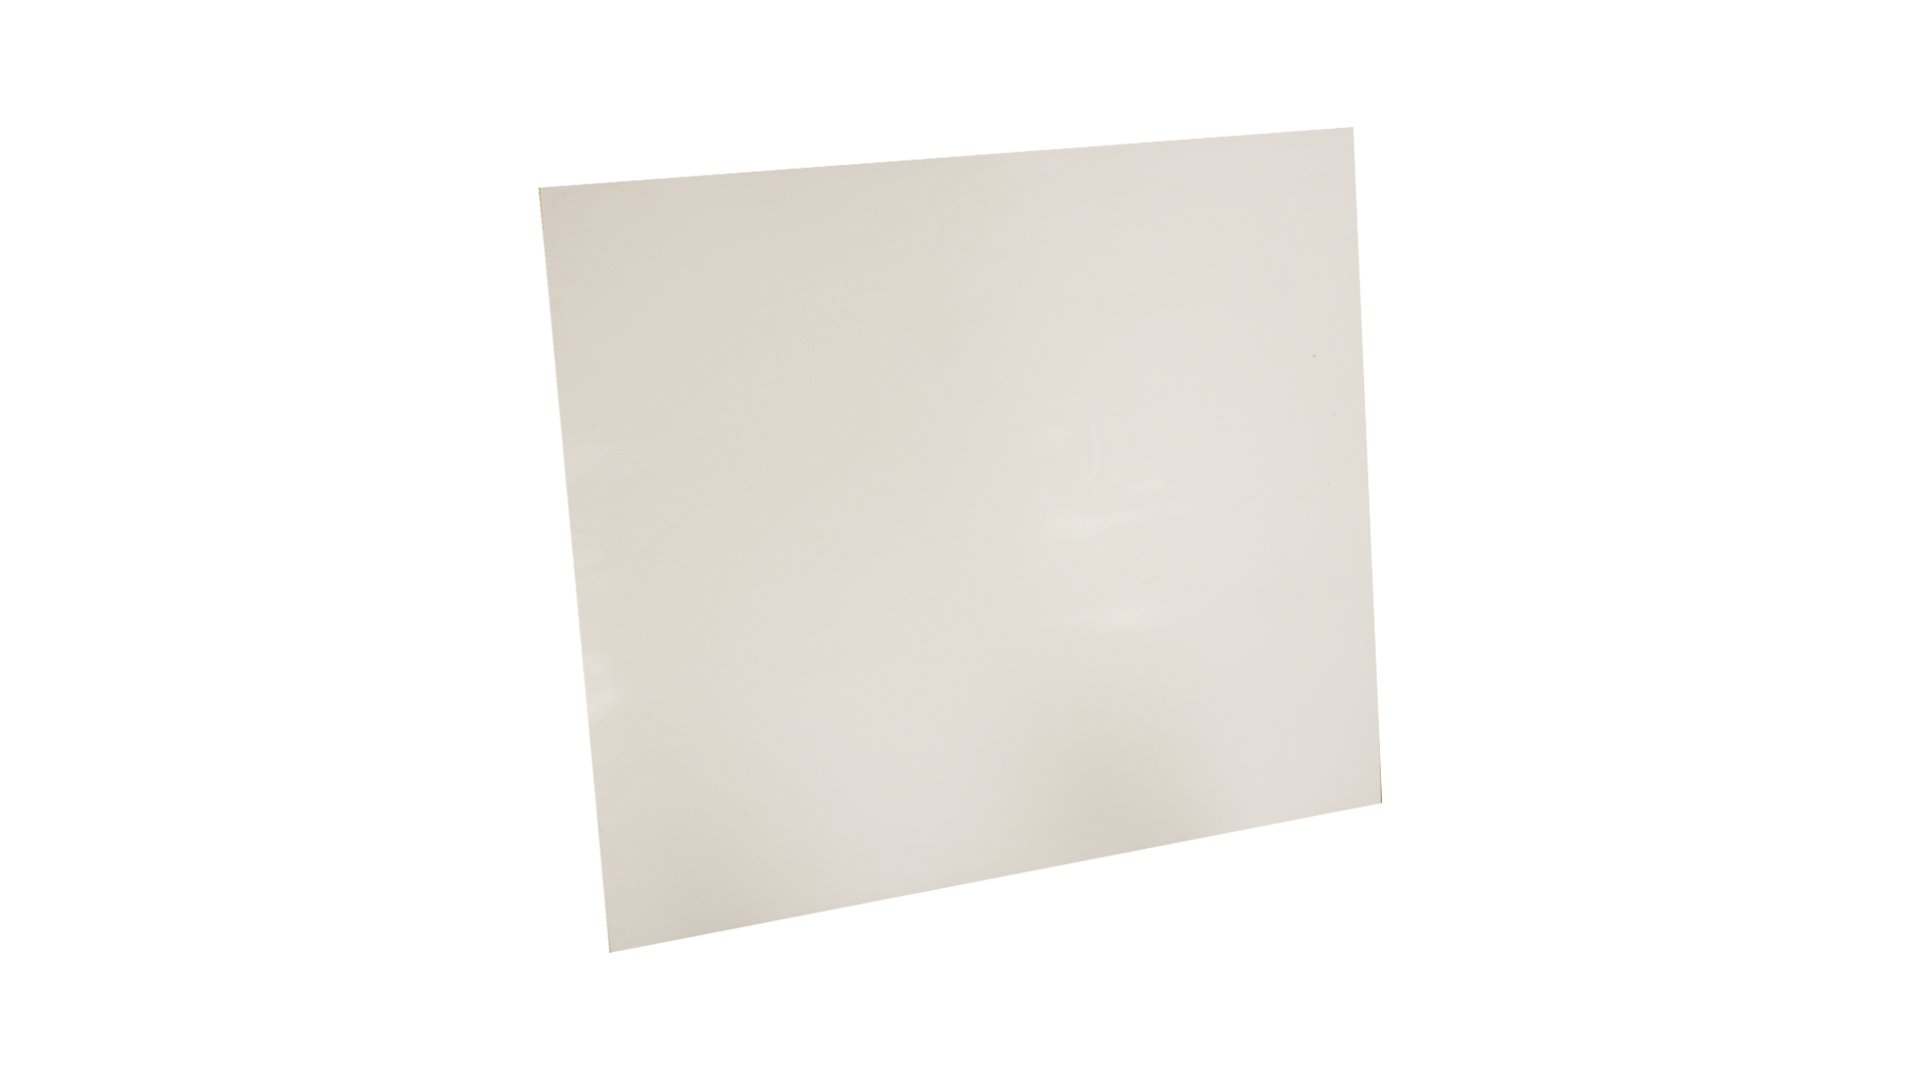 Sterling Seal & Supply Expanded PTFE Sheet, 1/8'' Thick, 59'' x 59'', White (1 sheet)